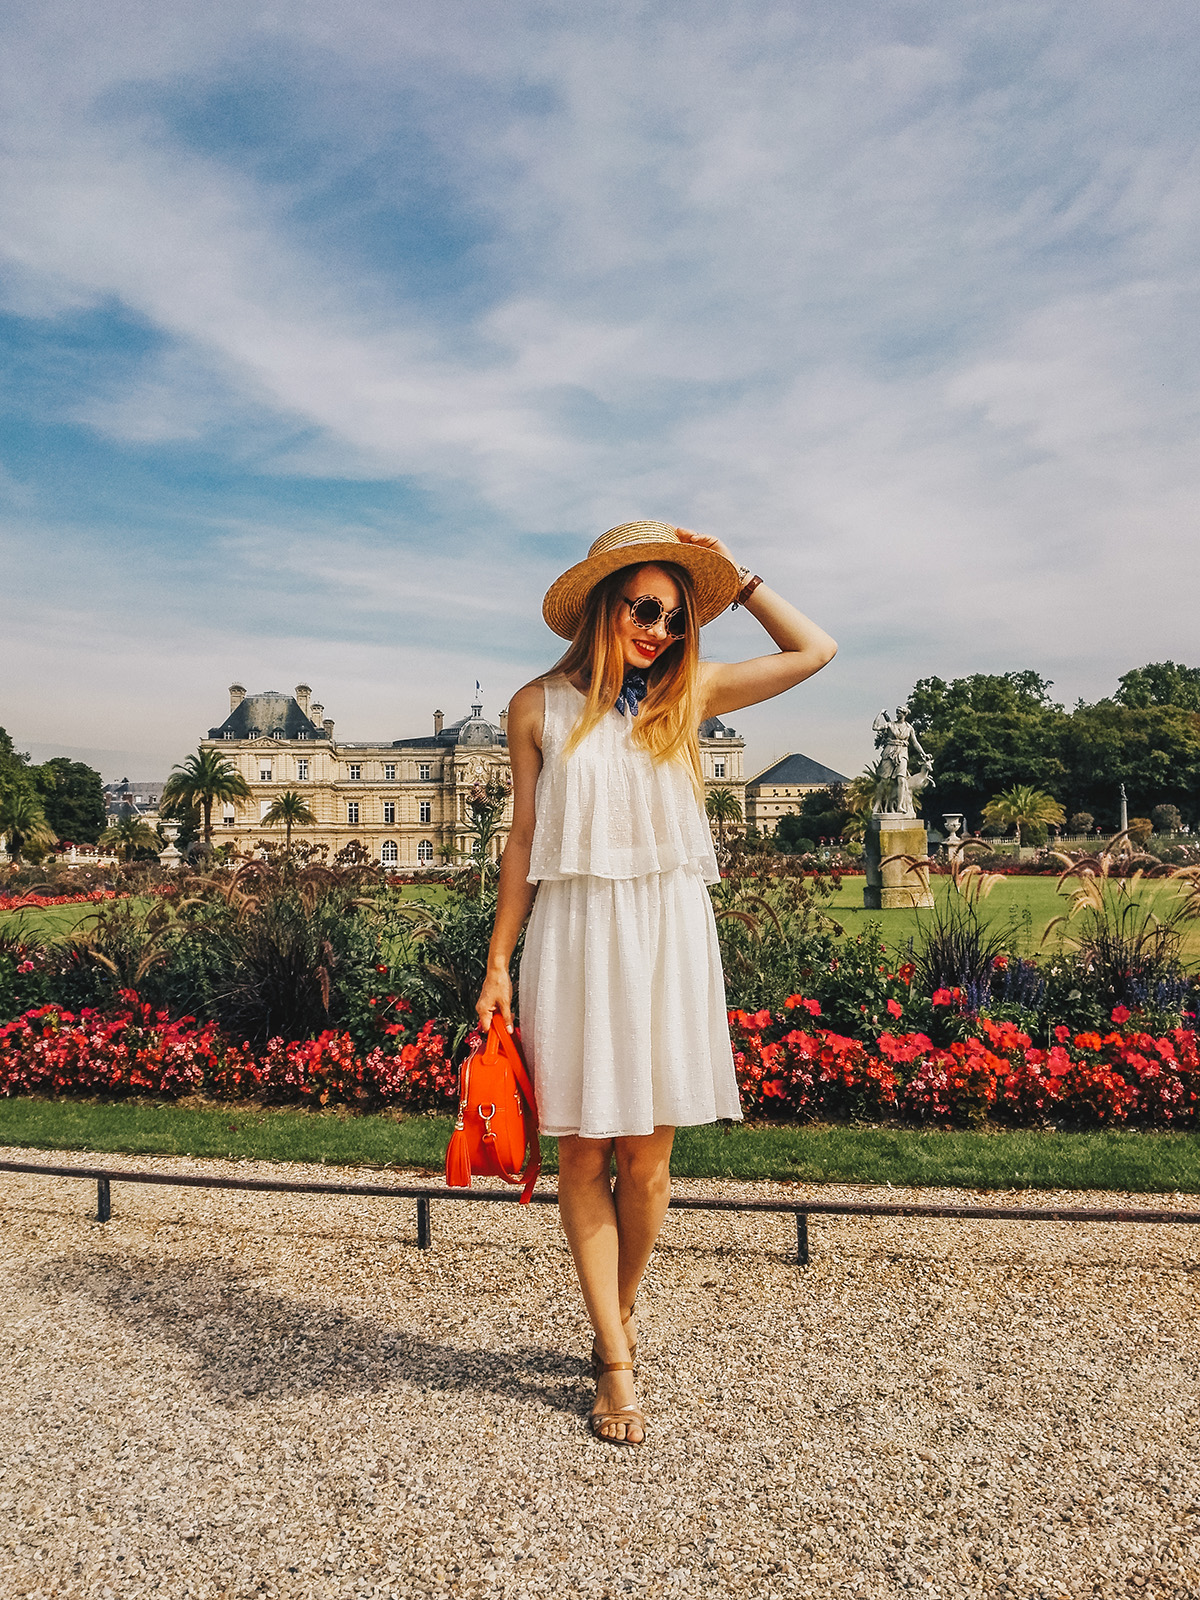 paris-jardin-luxembourg-pink-wish-french-outfit-6